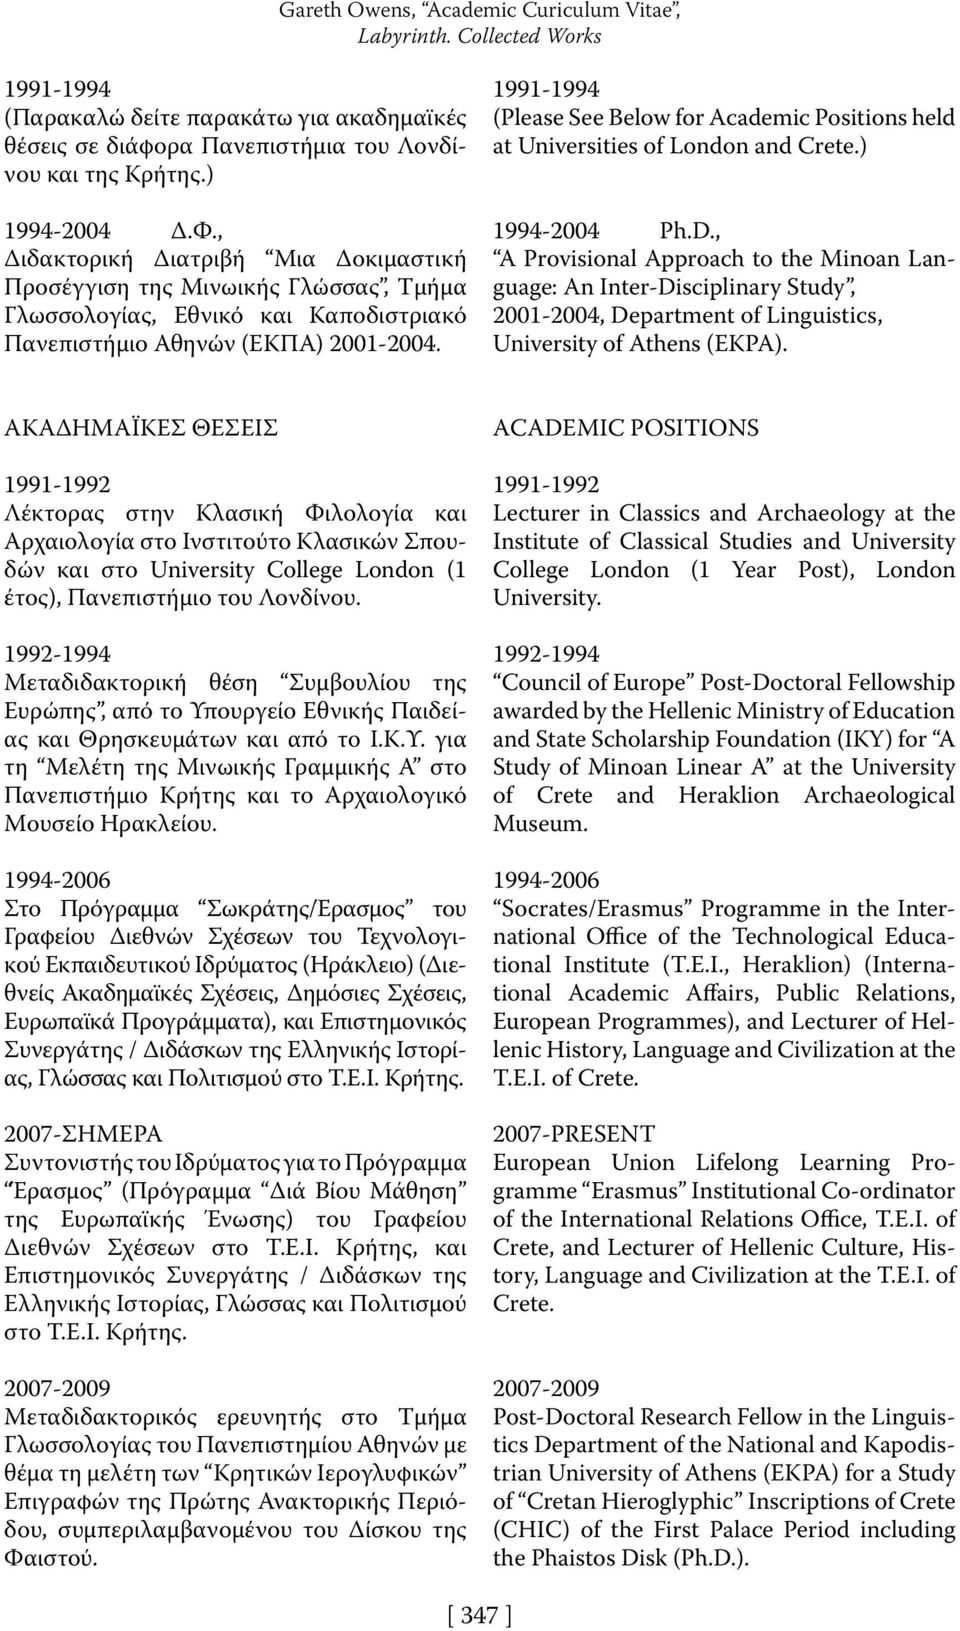 1991-1994 (Please See Below for Academic Positions held at Universities of London and Crete.) 1994-2004 Ph.D.